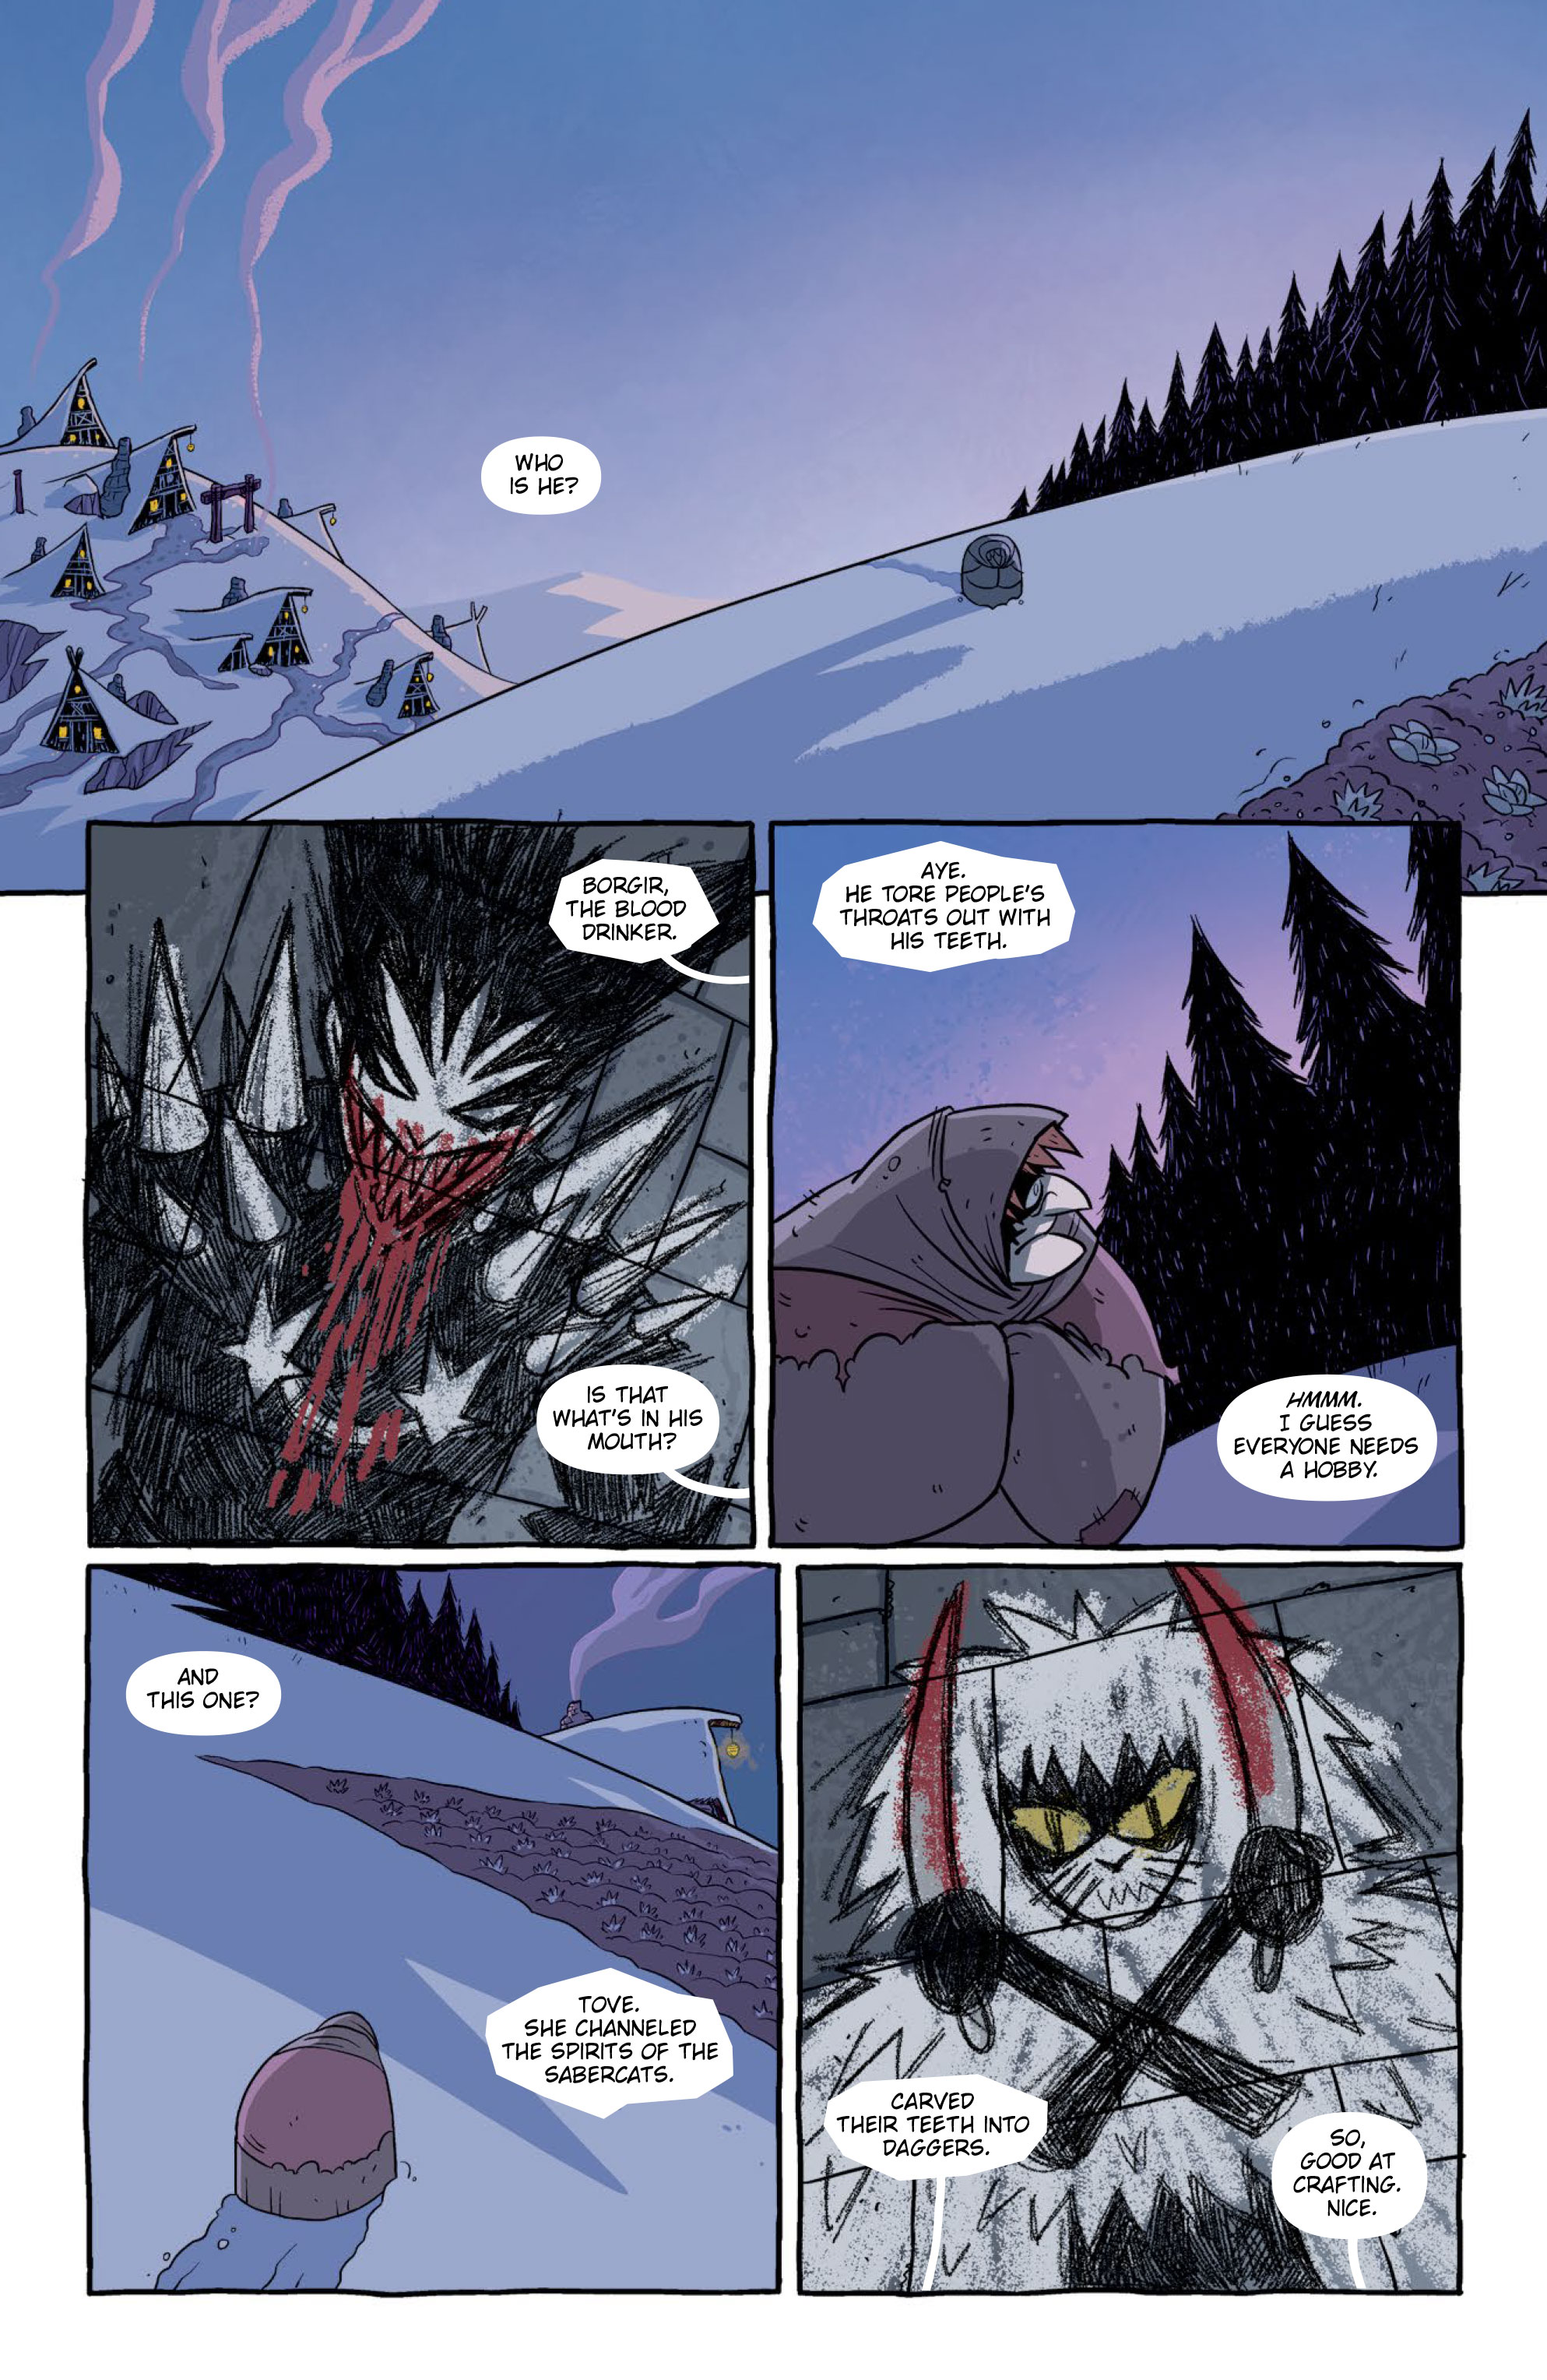 Preview-Pages-from-KRISS-#1-2.jpg